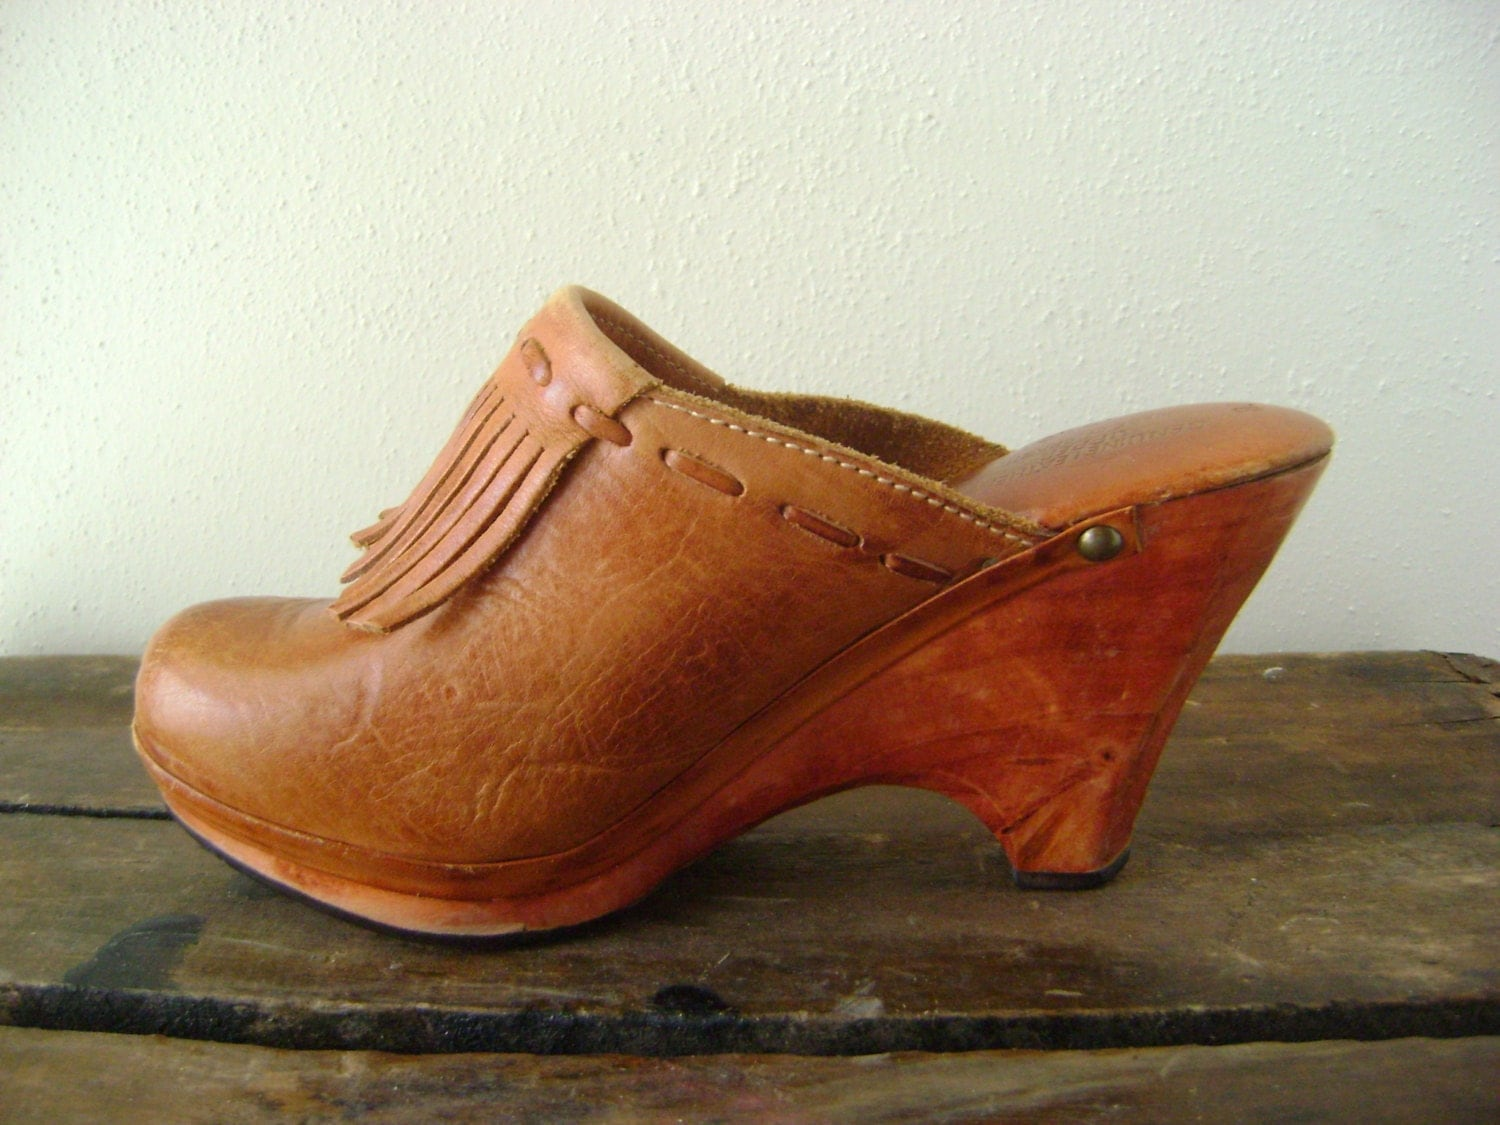 70s Leather Fringe Clogs Vintage Tall Wedge Mule Shoes Size 7B